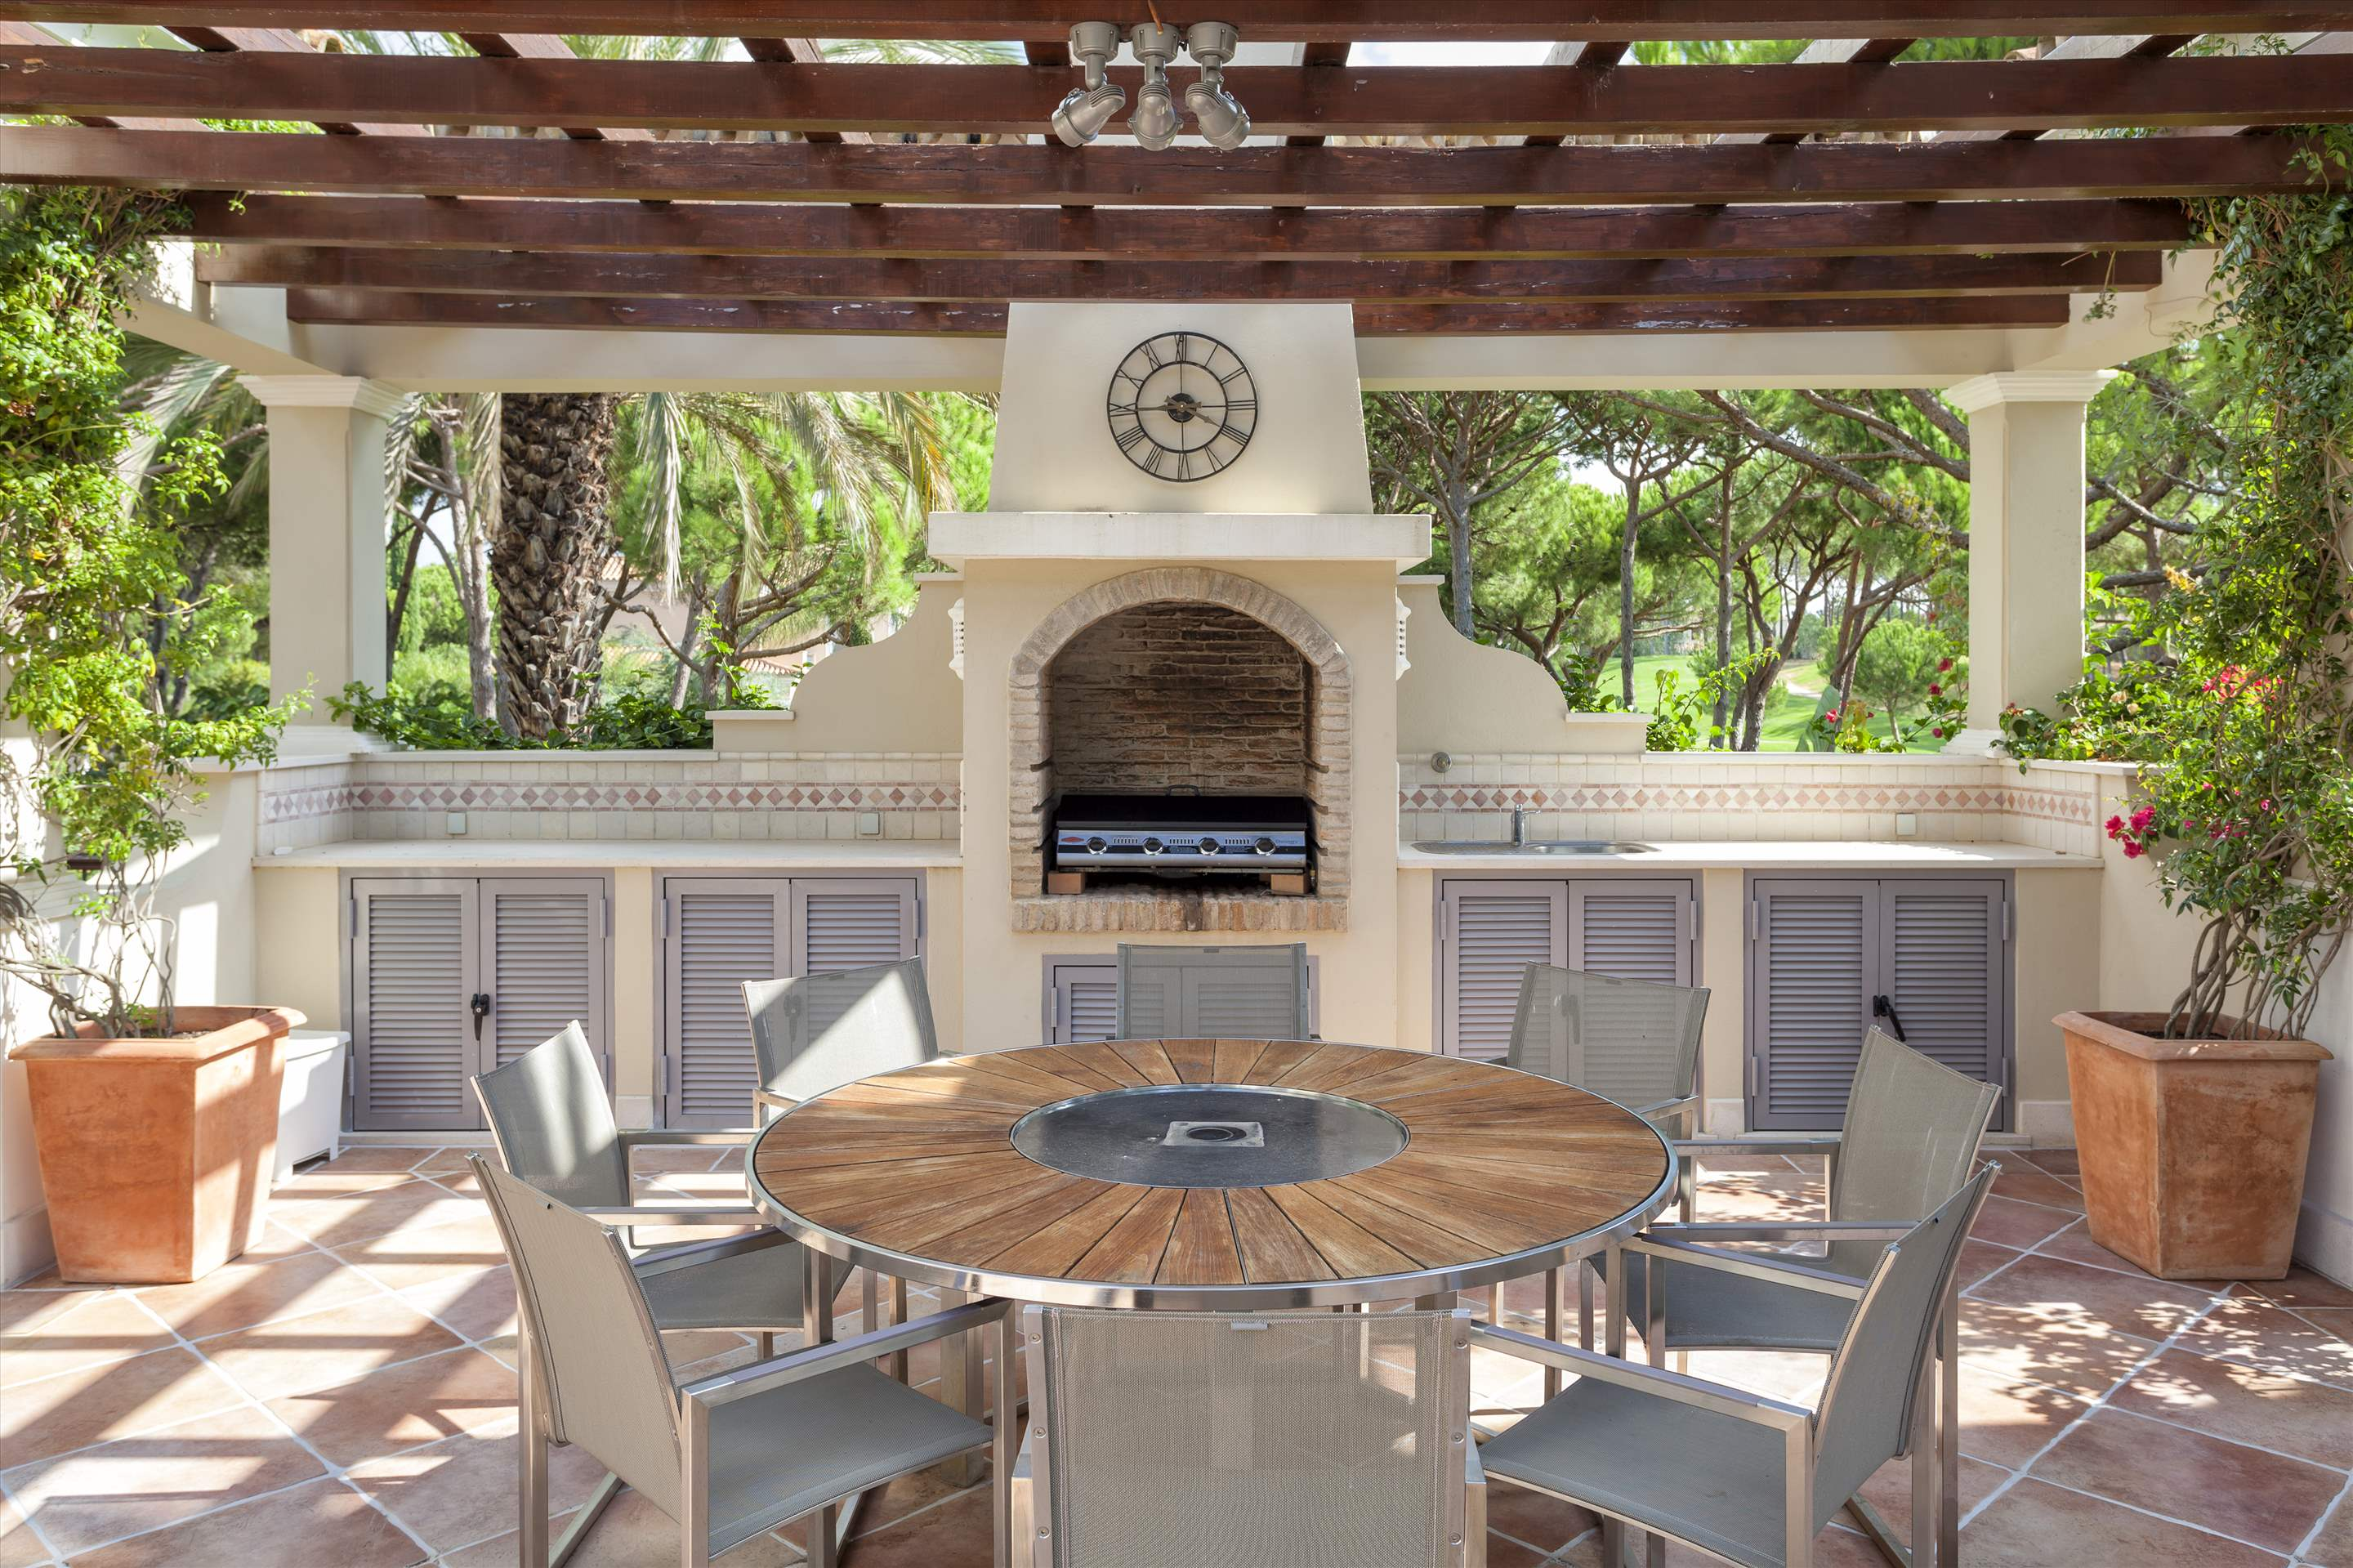 Villa Campainha, 4 Bedroom Rental, 4 bedroom villa in Quinta do Lago, Algarve Photo #3